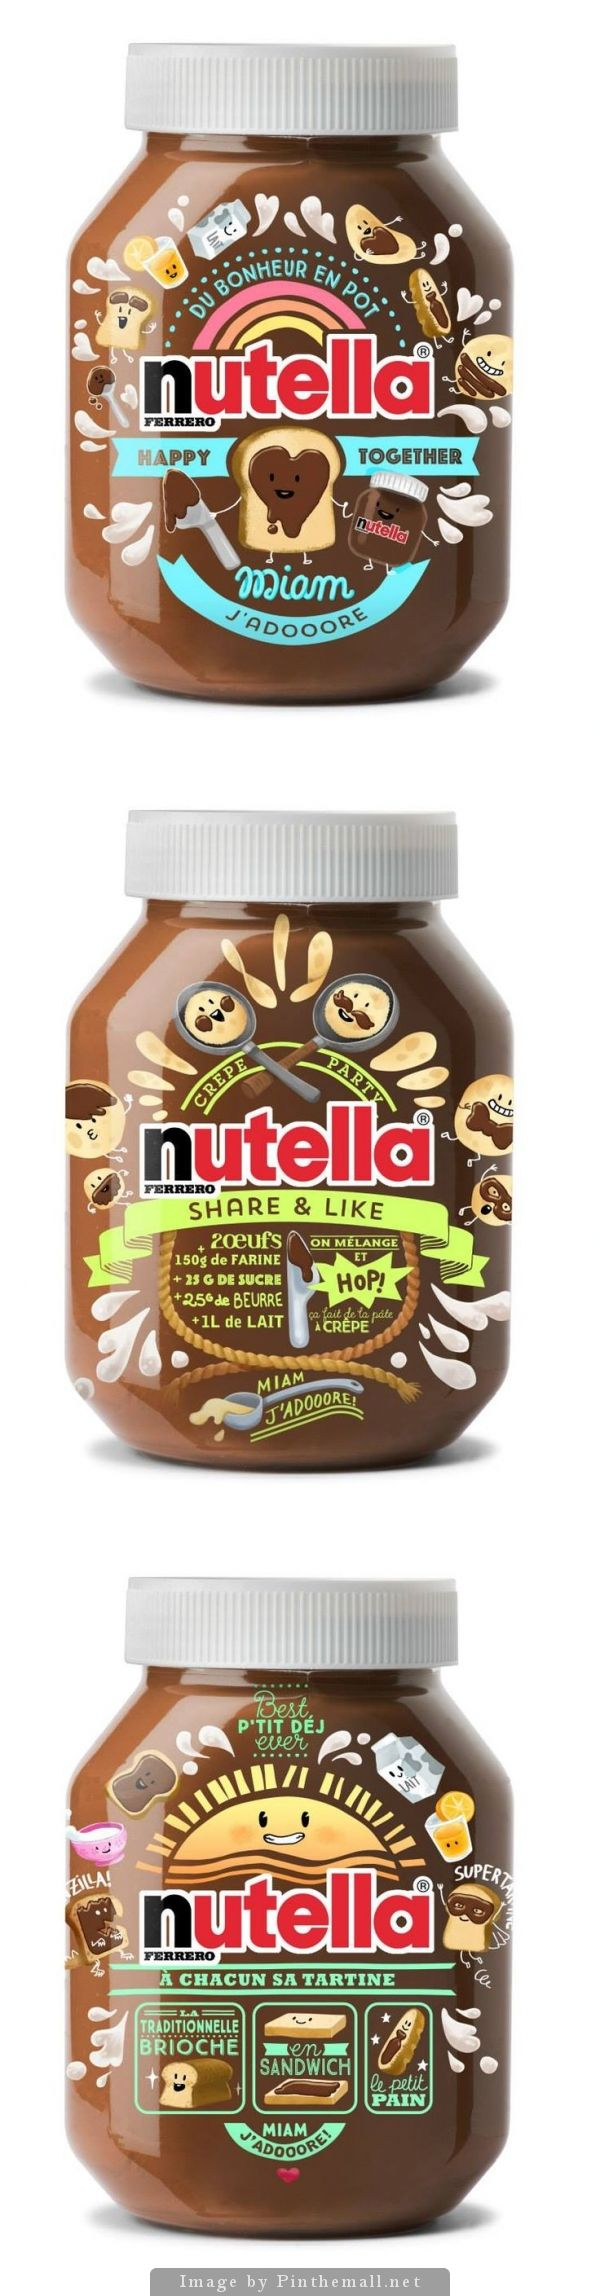 Nutella: your daily #packaging smile : ) curated by Packaging Diva PD (sorry no source link) created via http://pinthemall.net